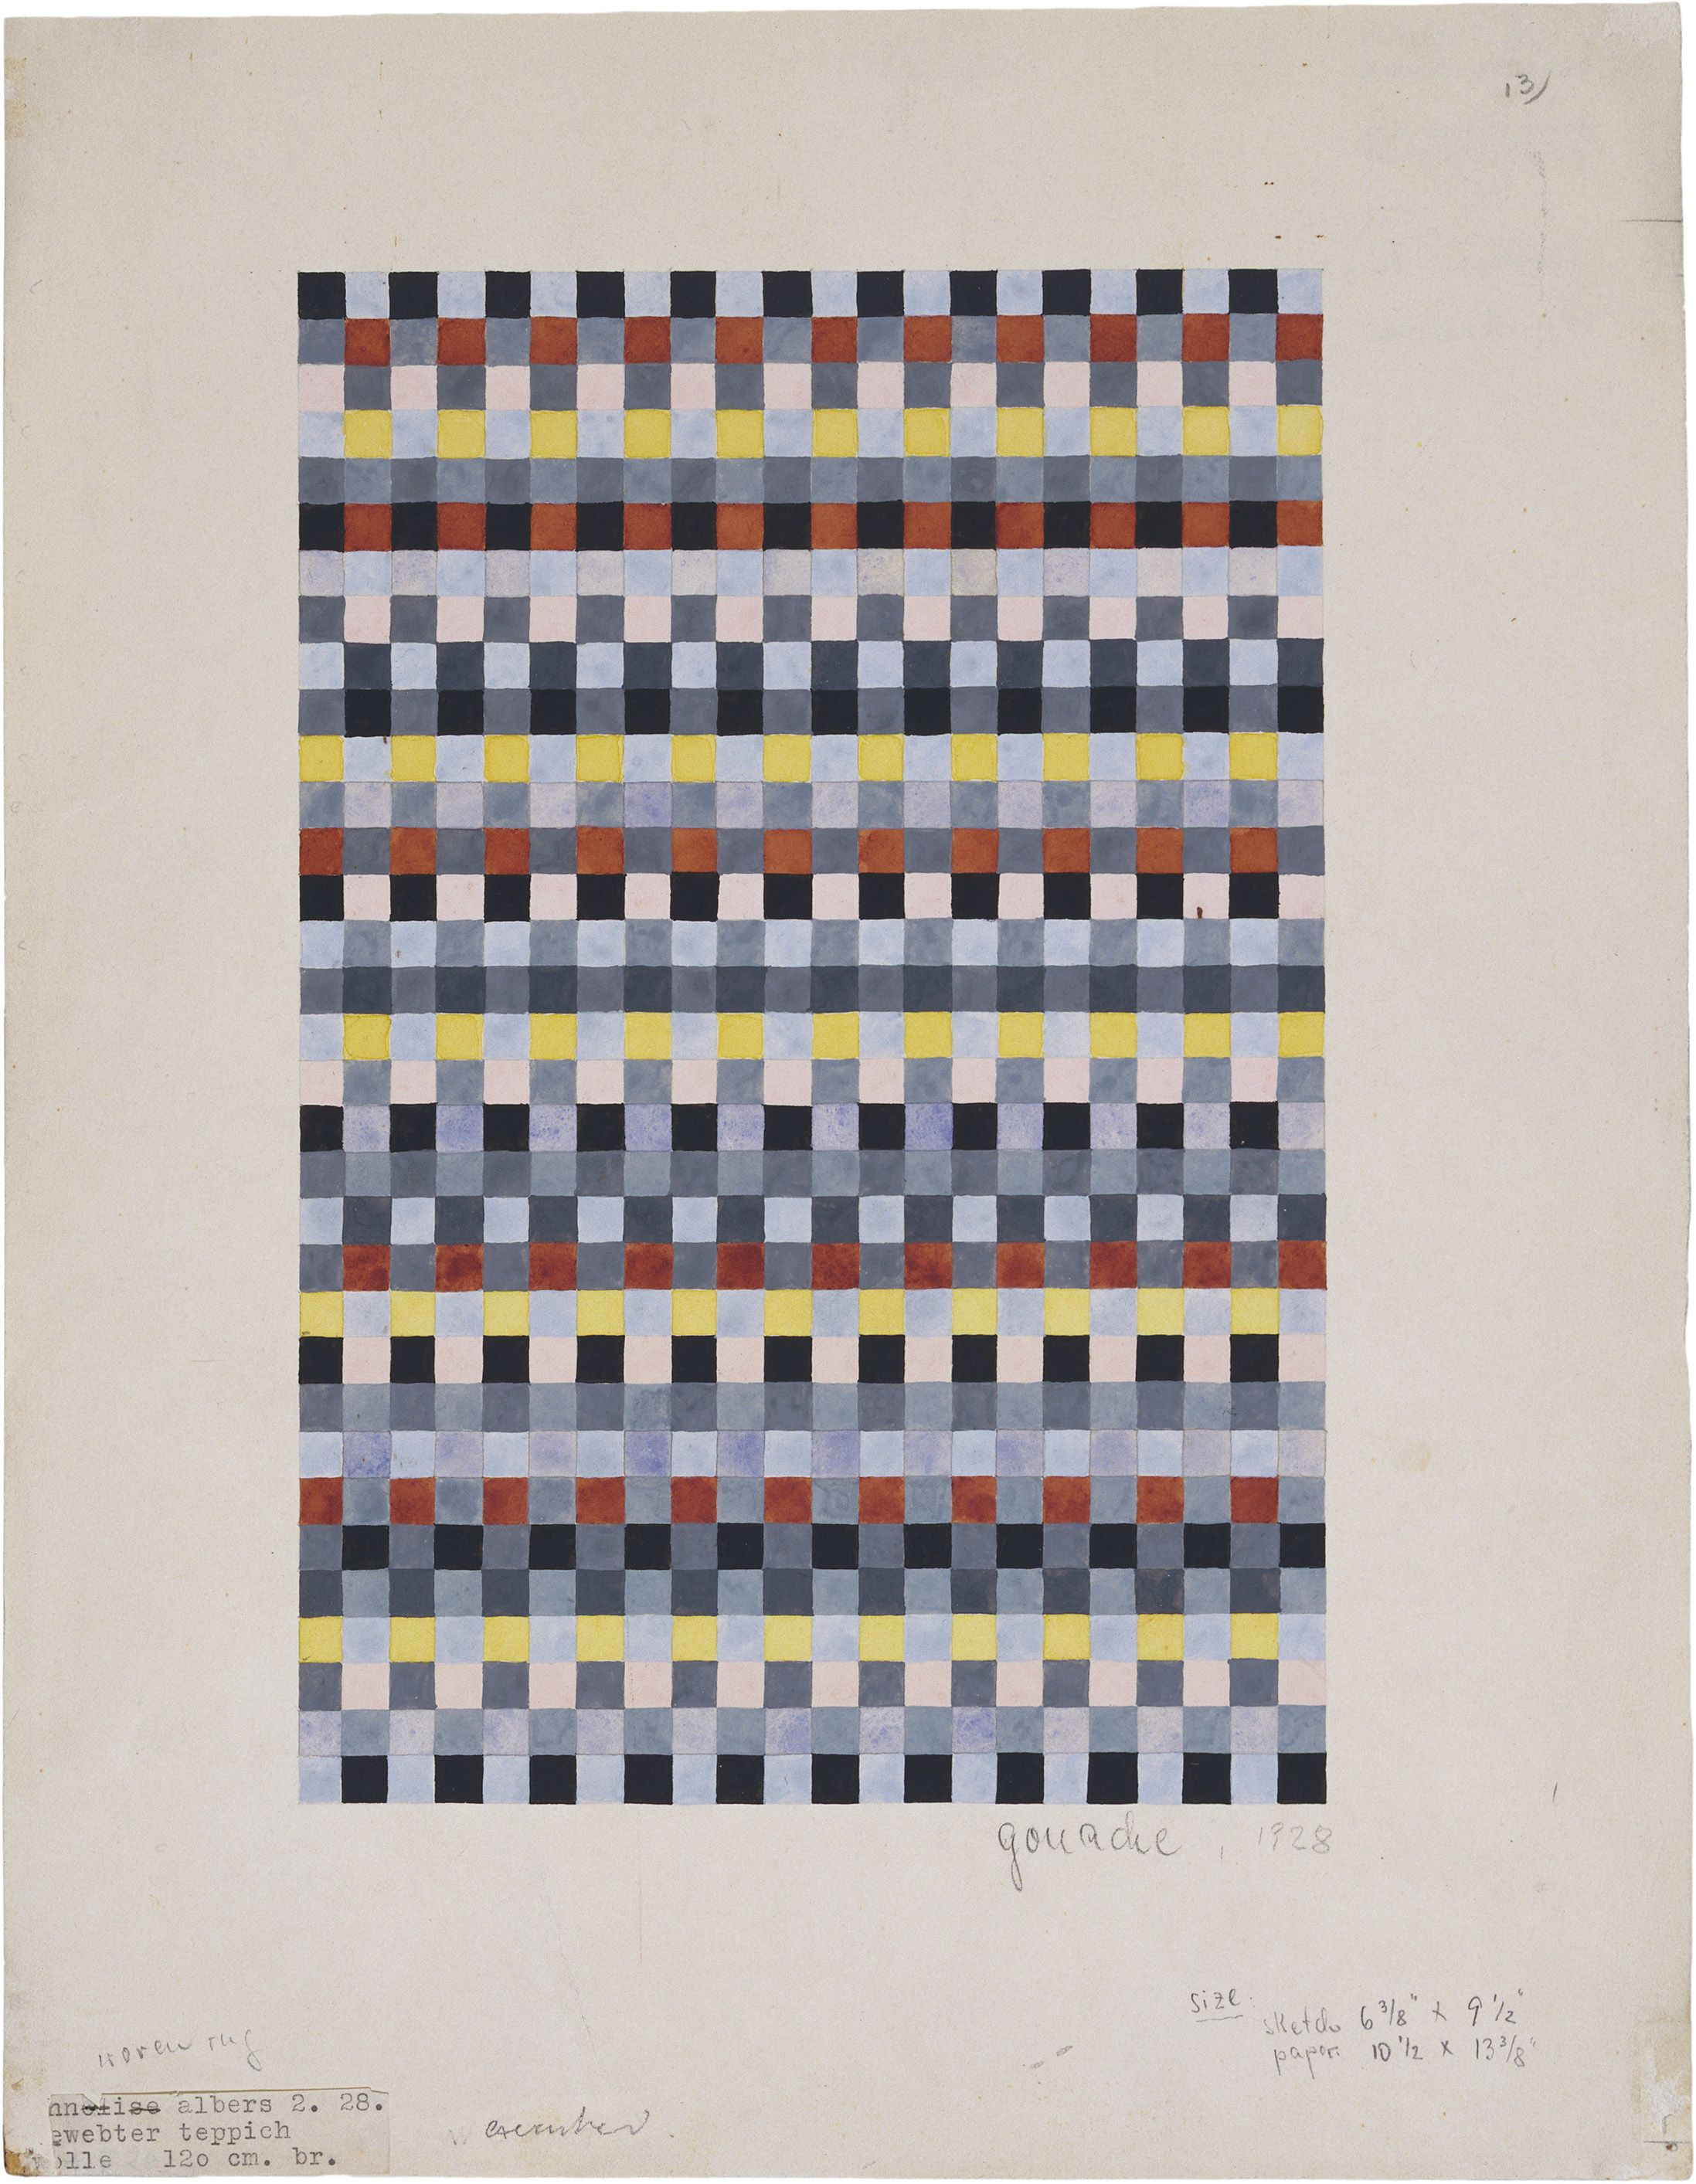 Vintage Collage Pacific Teppich Rug Design For A Child S Room Gouache On Paper 1928 Anni Albers